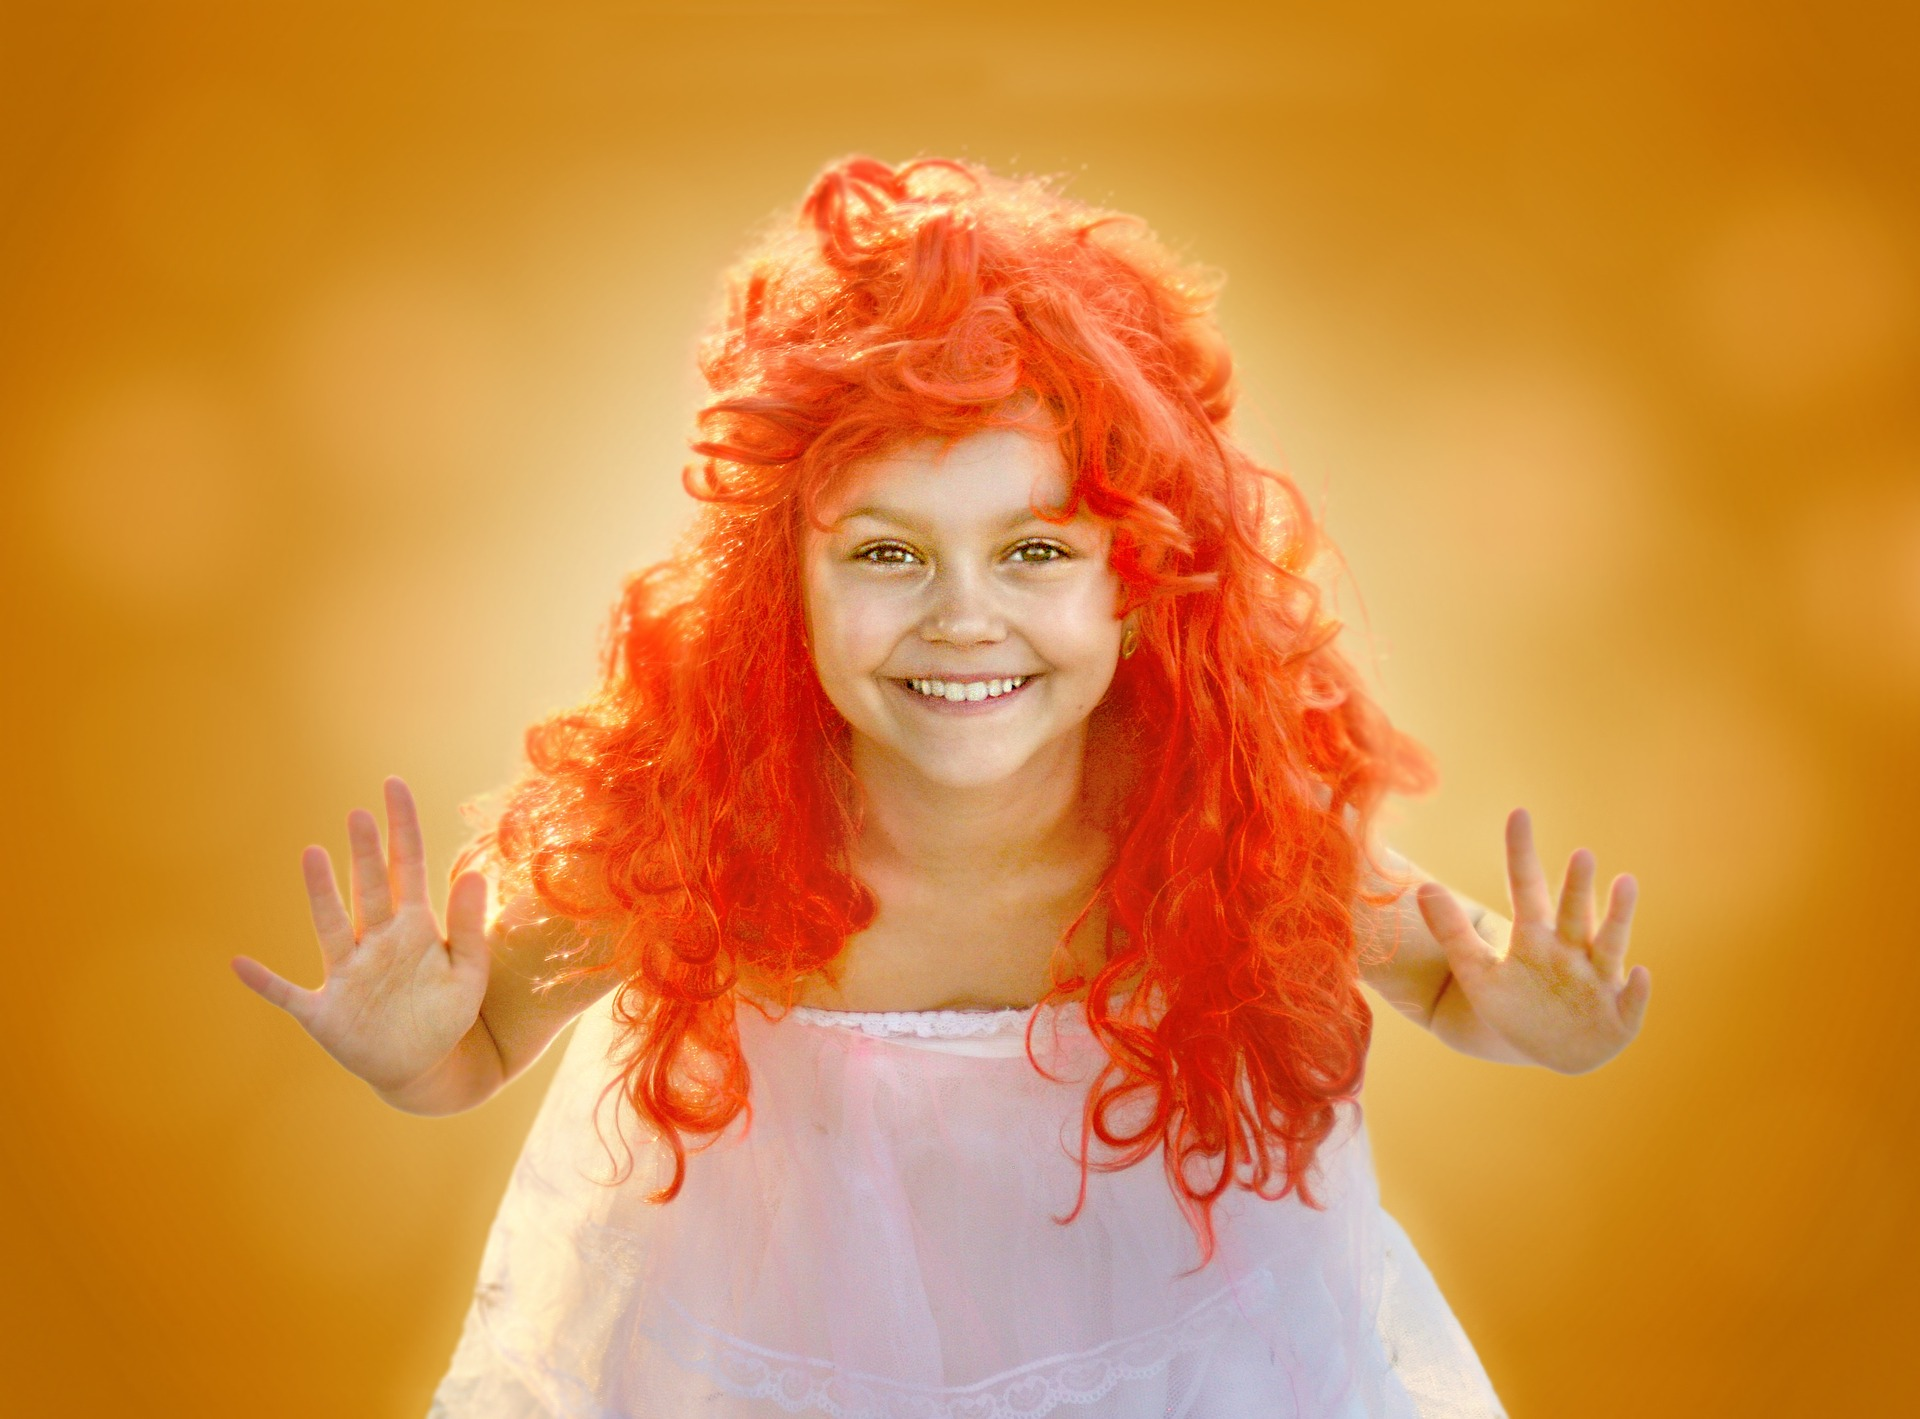 Smiling Girl is Wearing a Wig with Orange Hair Color